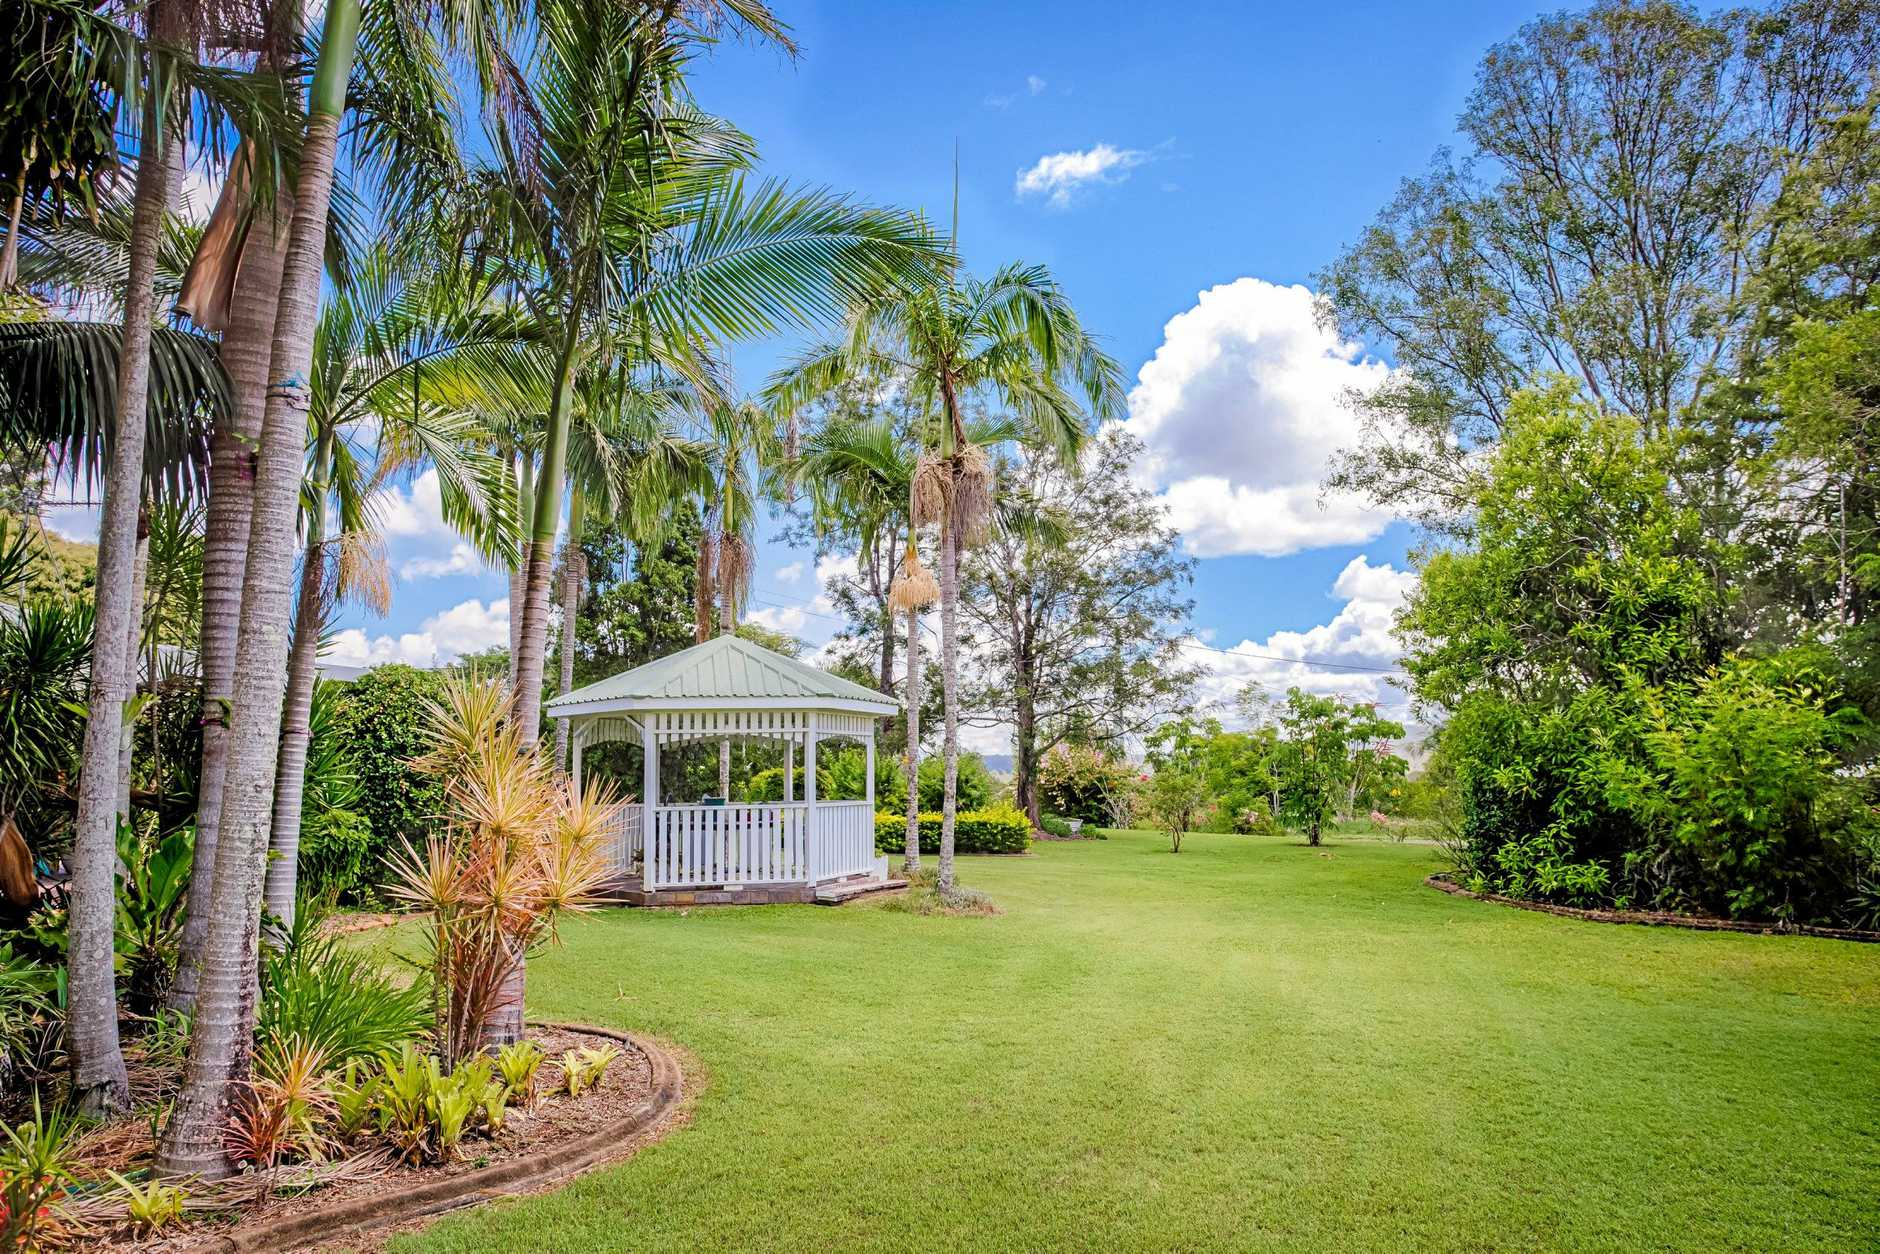 25 Silky Oak Drive, Nahrunda is up for viewing this weekend.